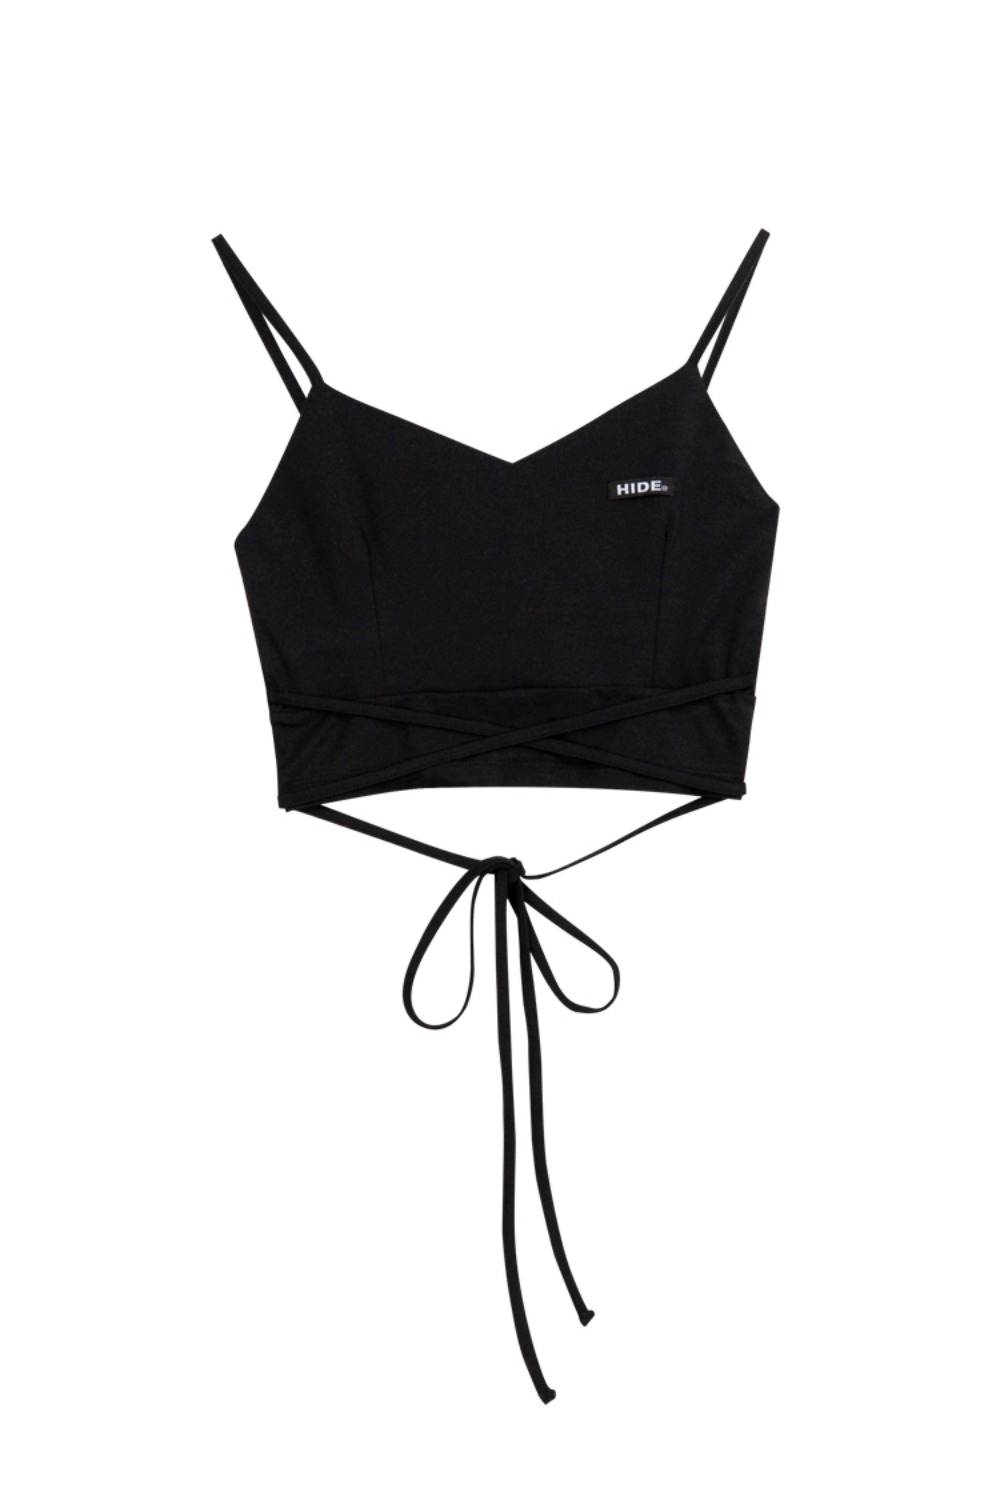 HIDE String Sleeveless Top BLACK